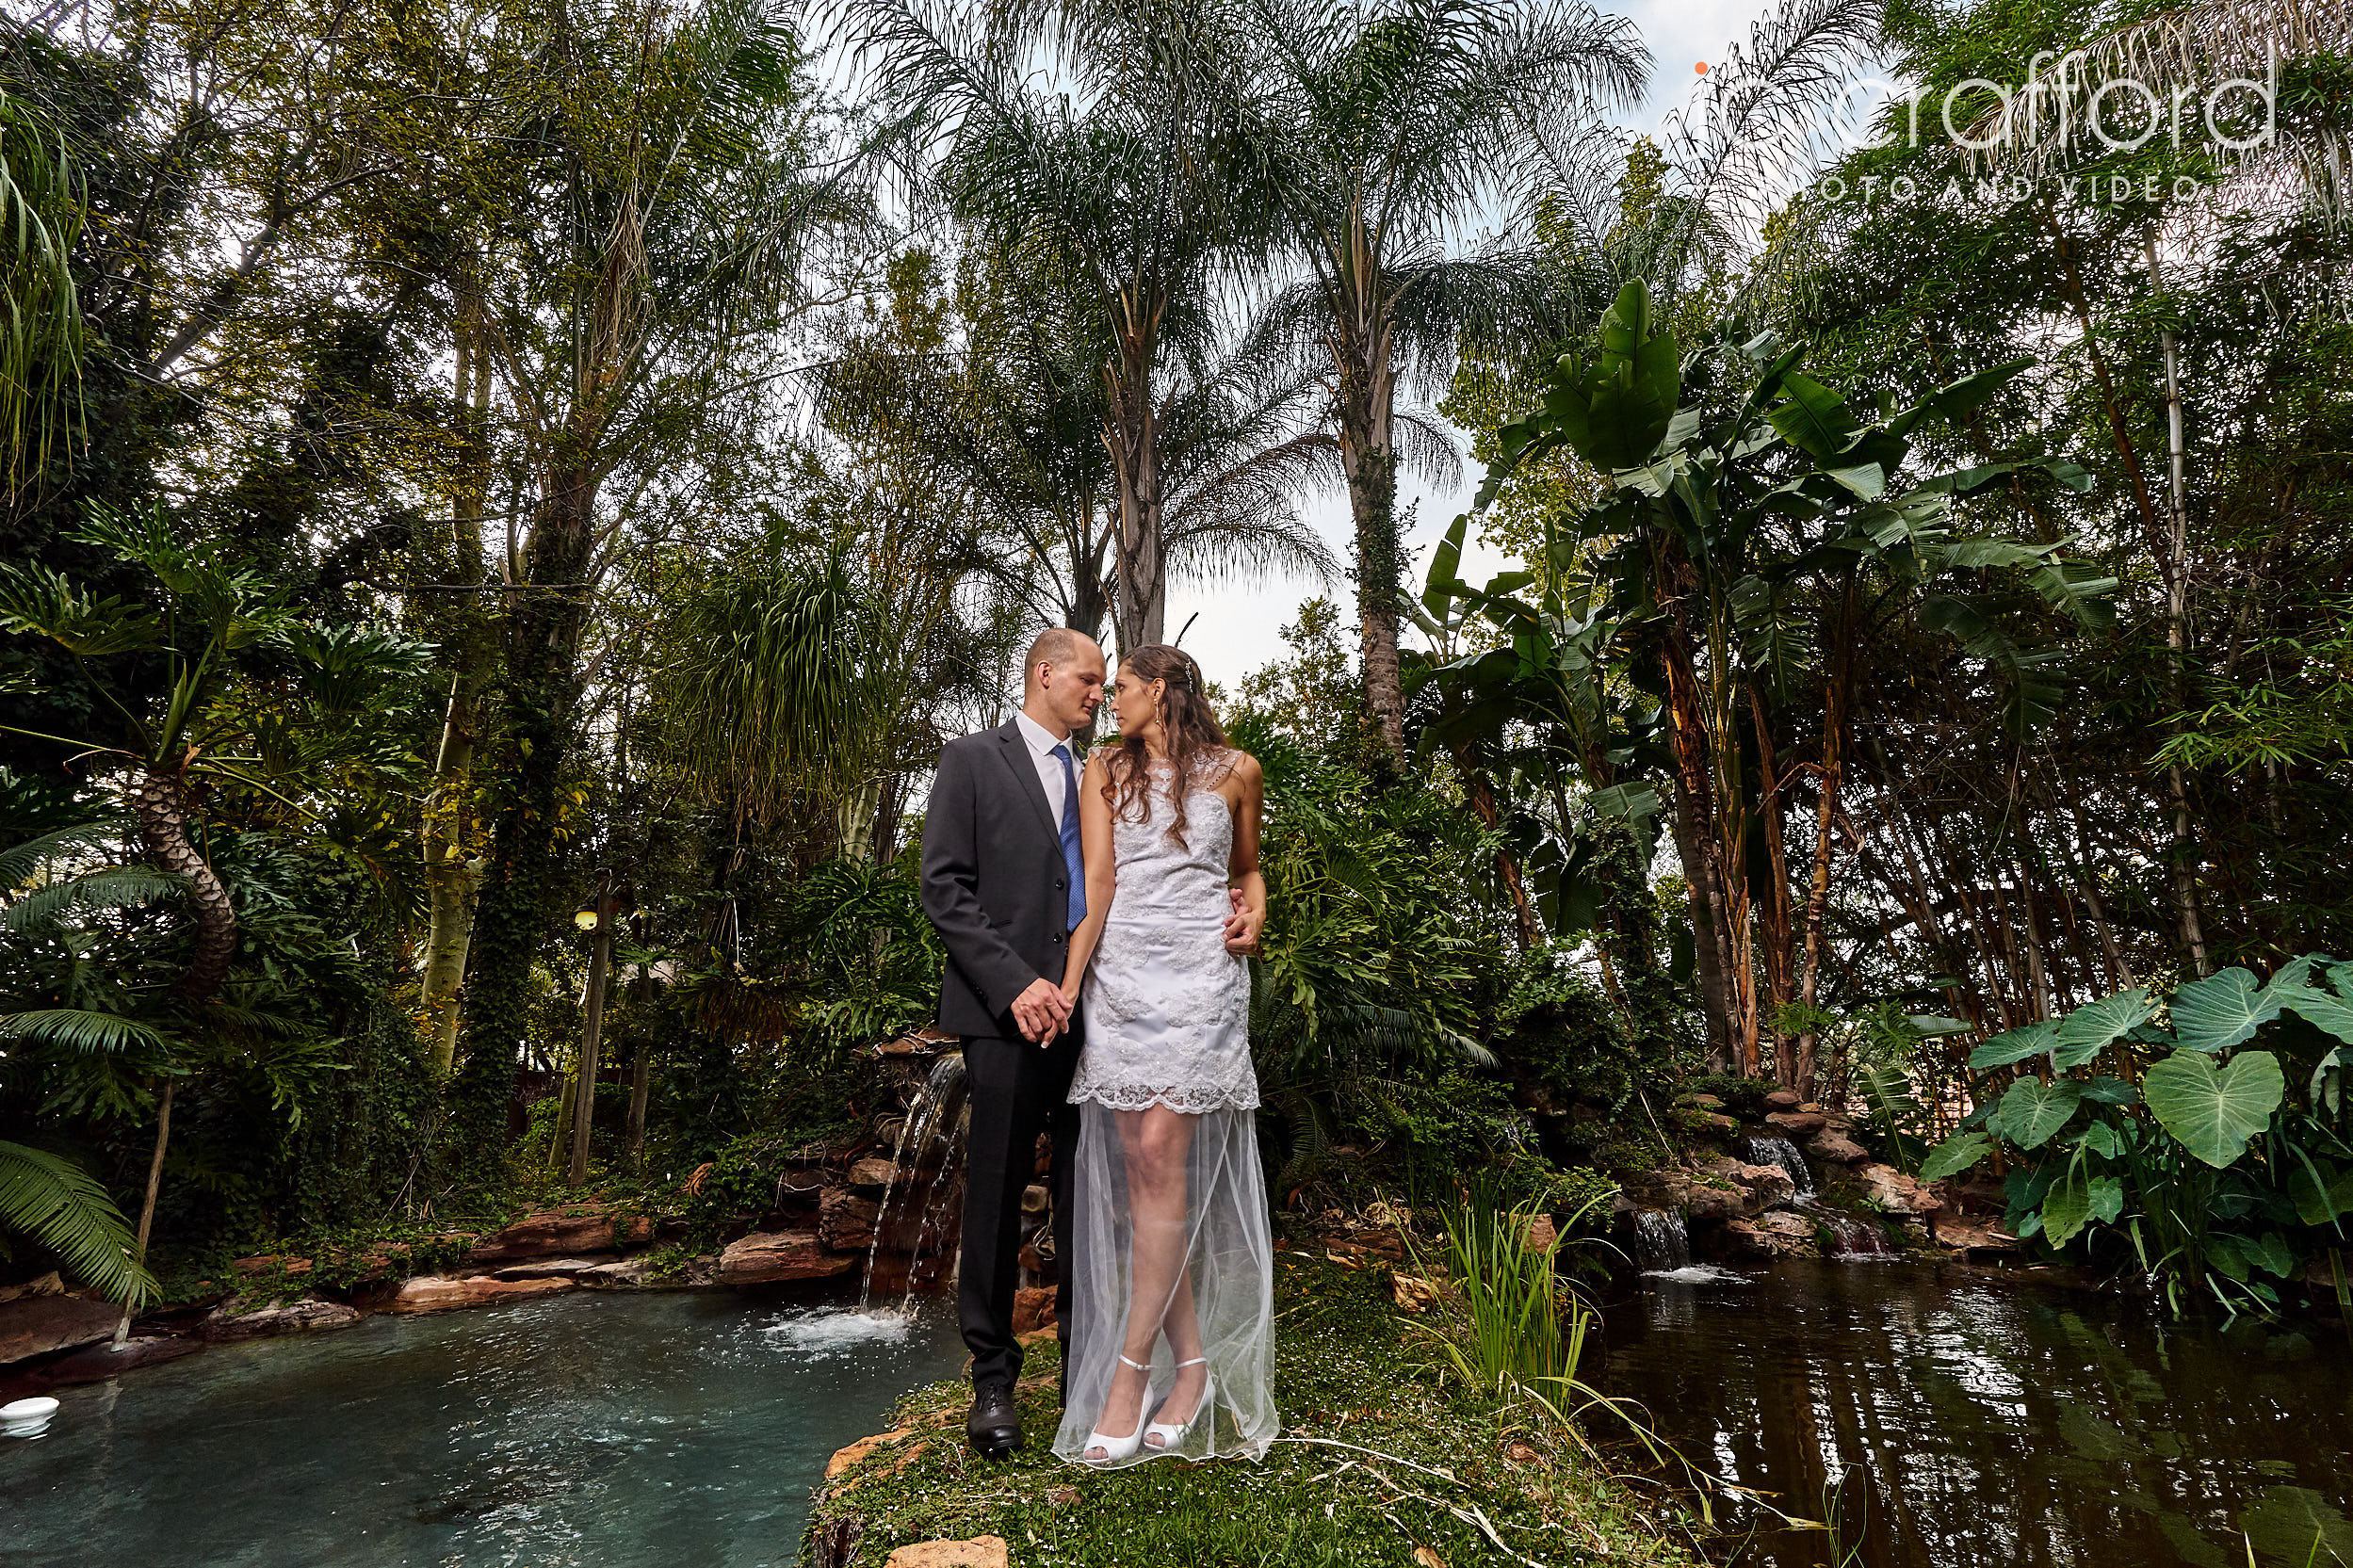 JC Crafford Photo and Video wedding Photography at Motozi Lodge AS